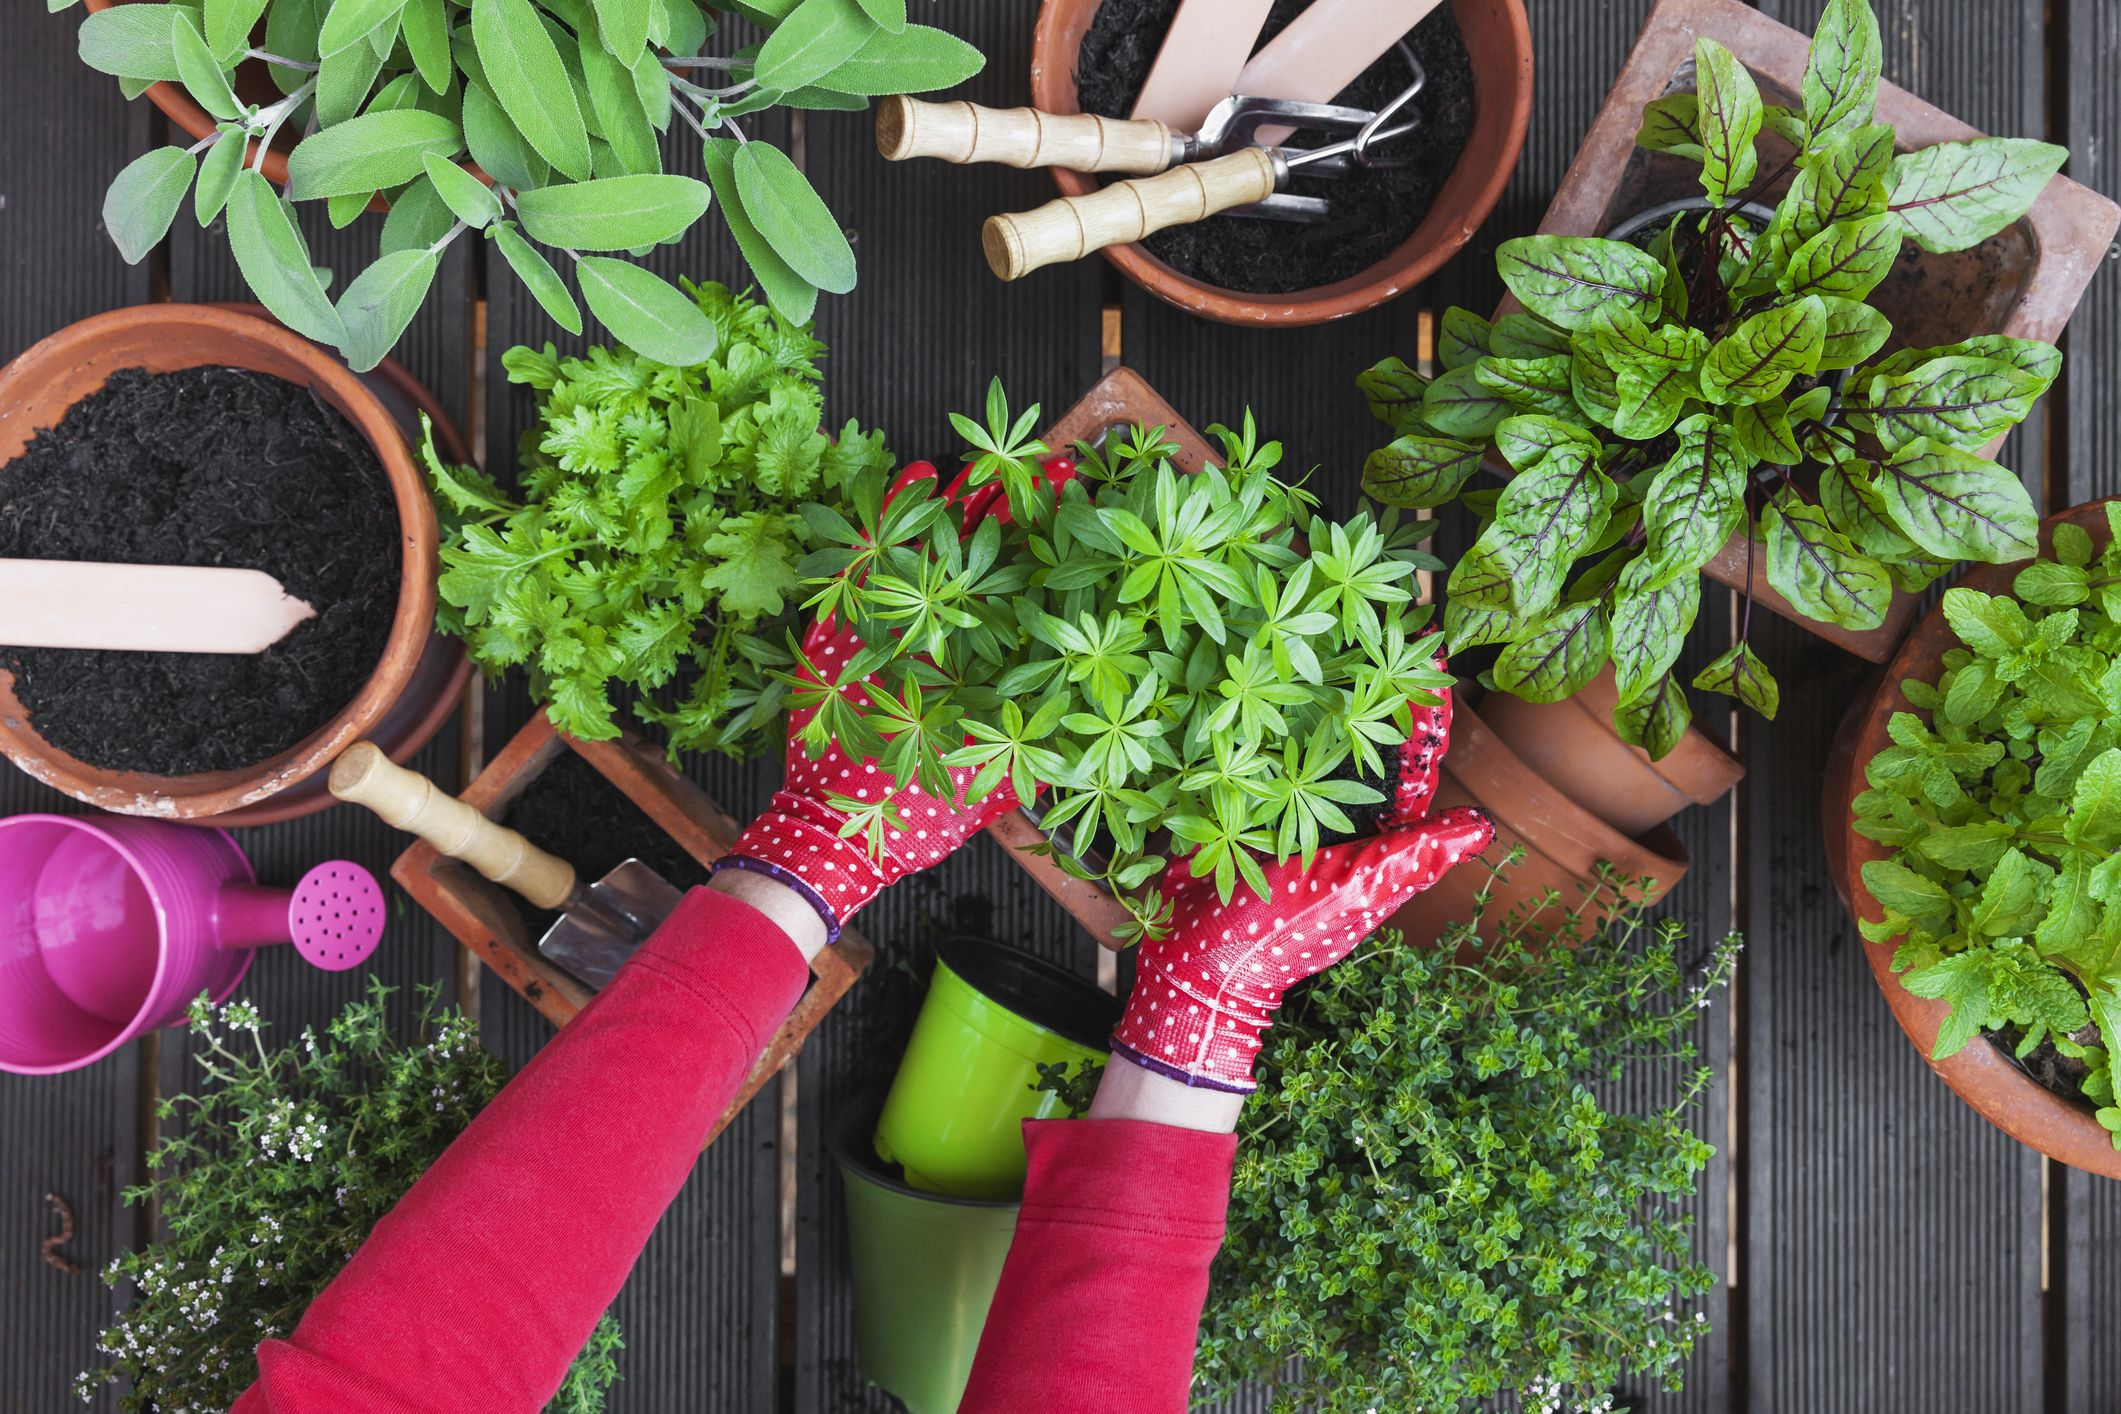 Starting your own herb garden? Read this handy infographic